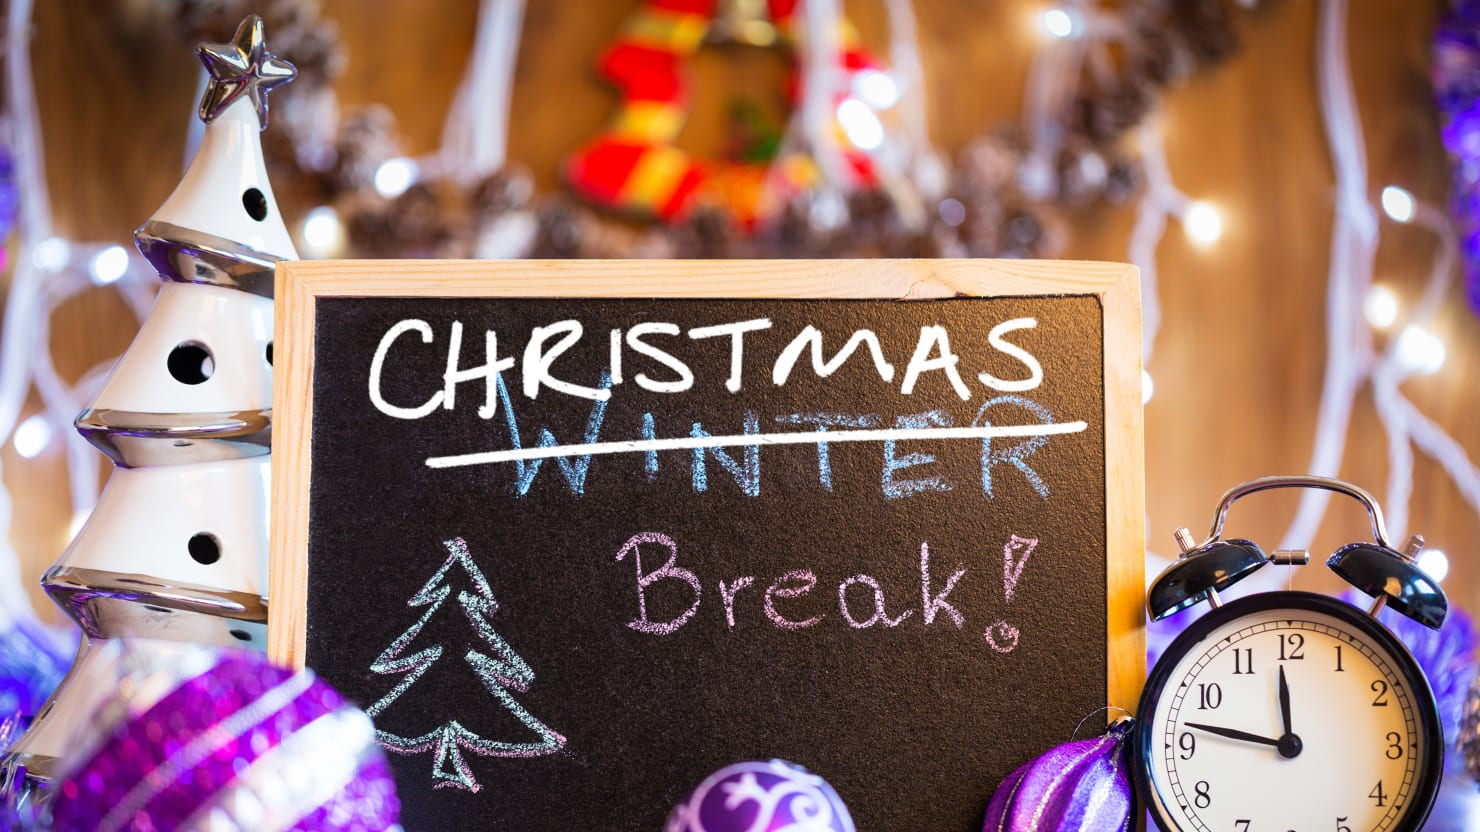 shutterstockphoto illustration by the daily beast - When Does School Start Back After Christmas Break